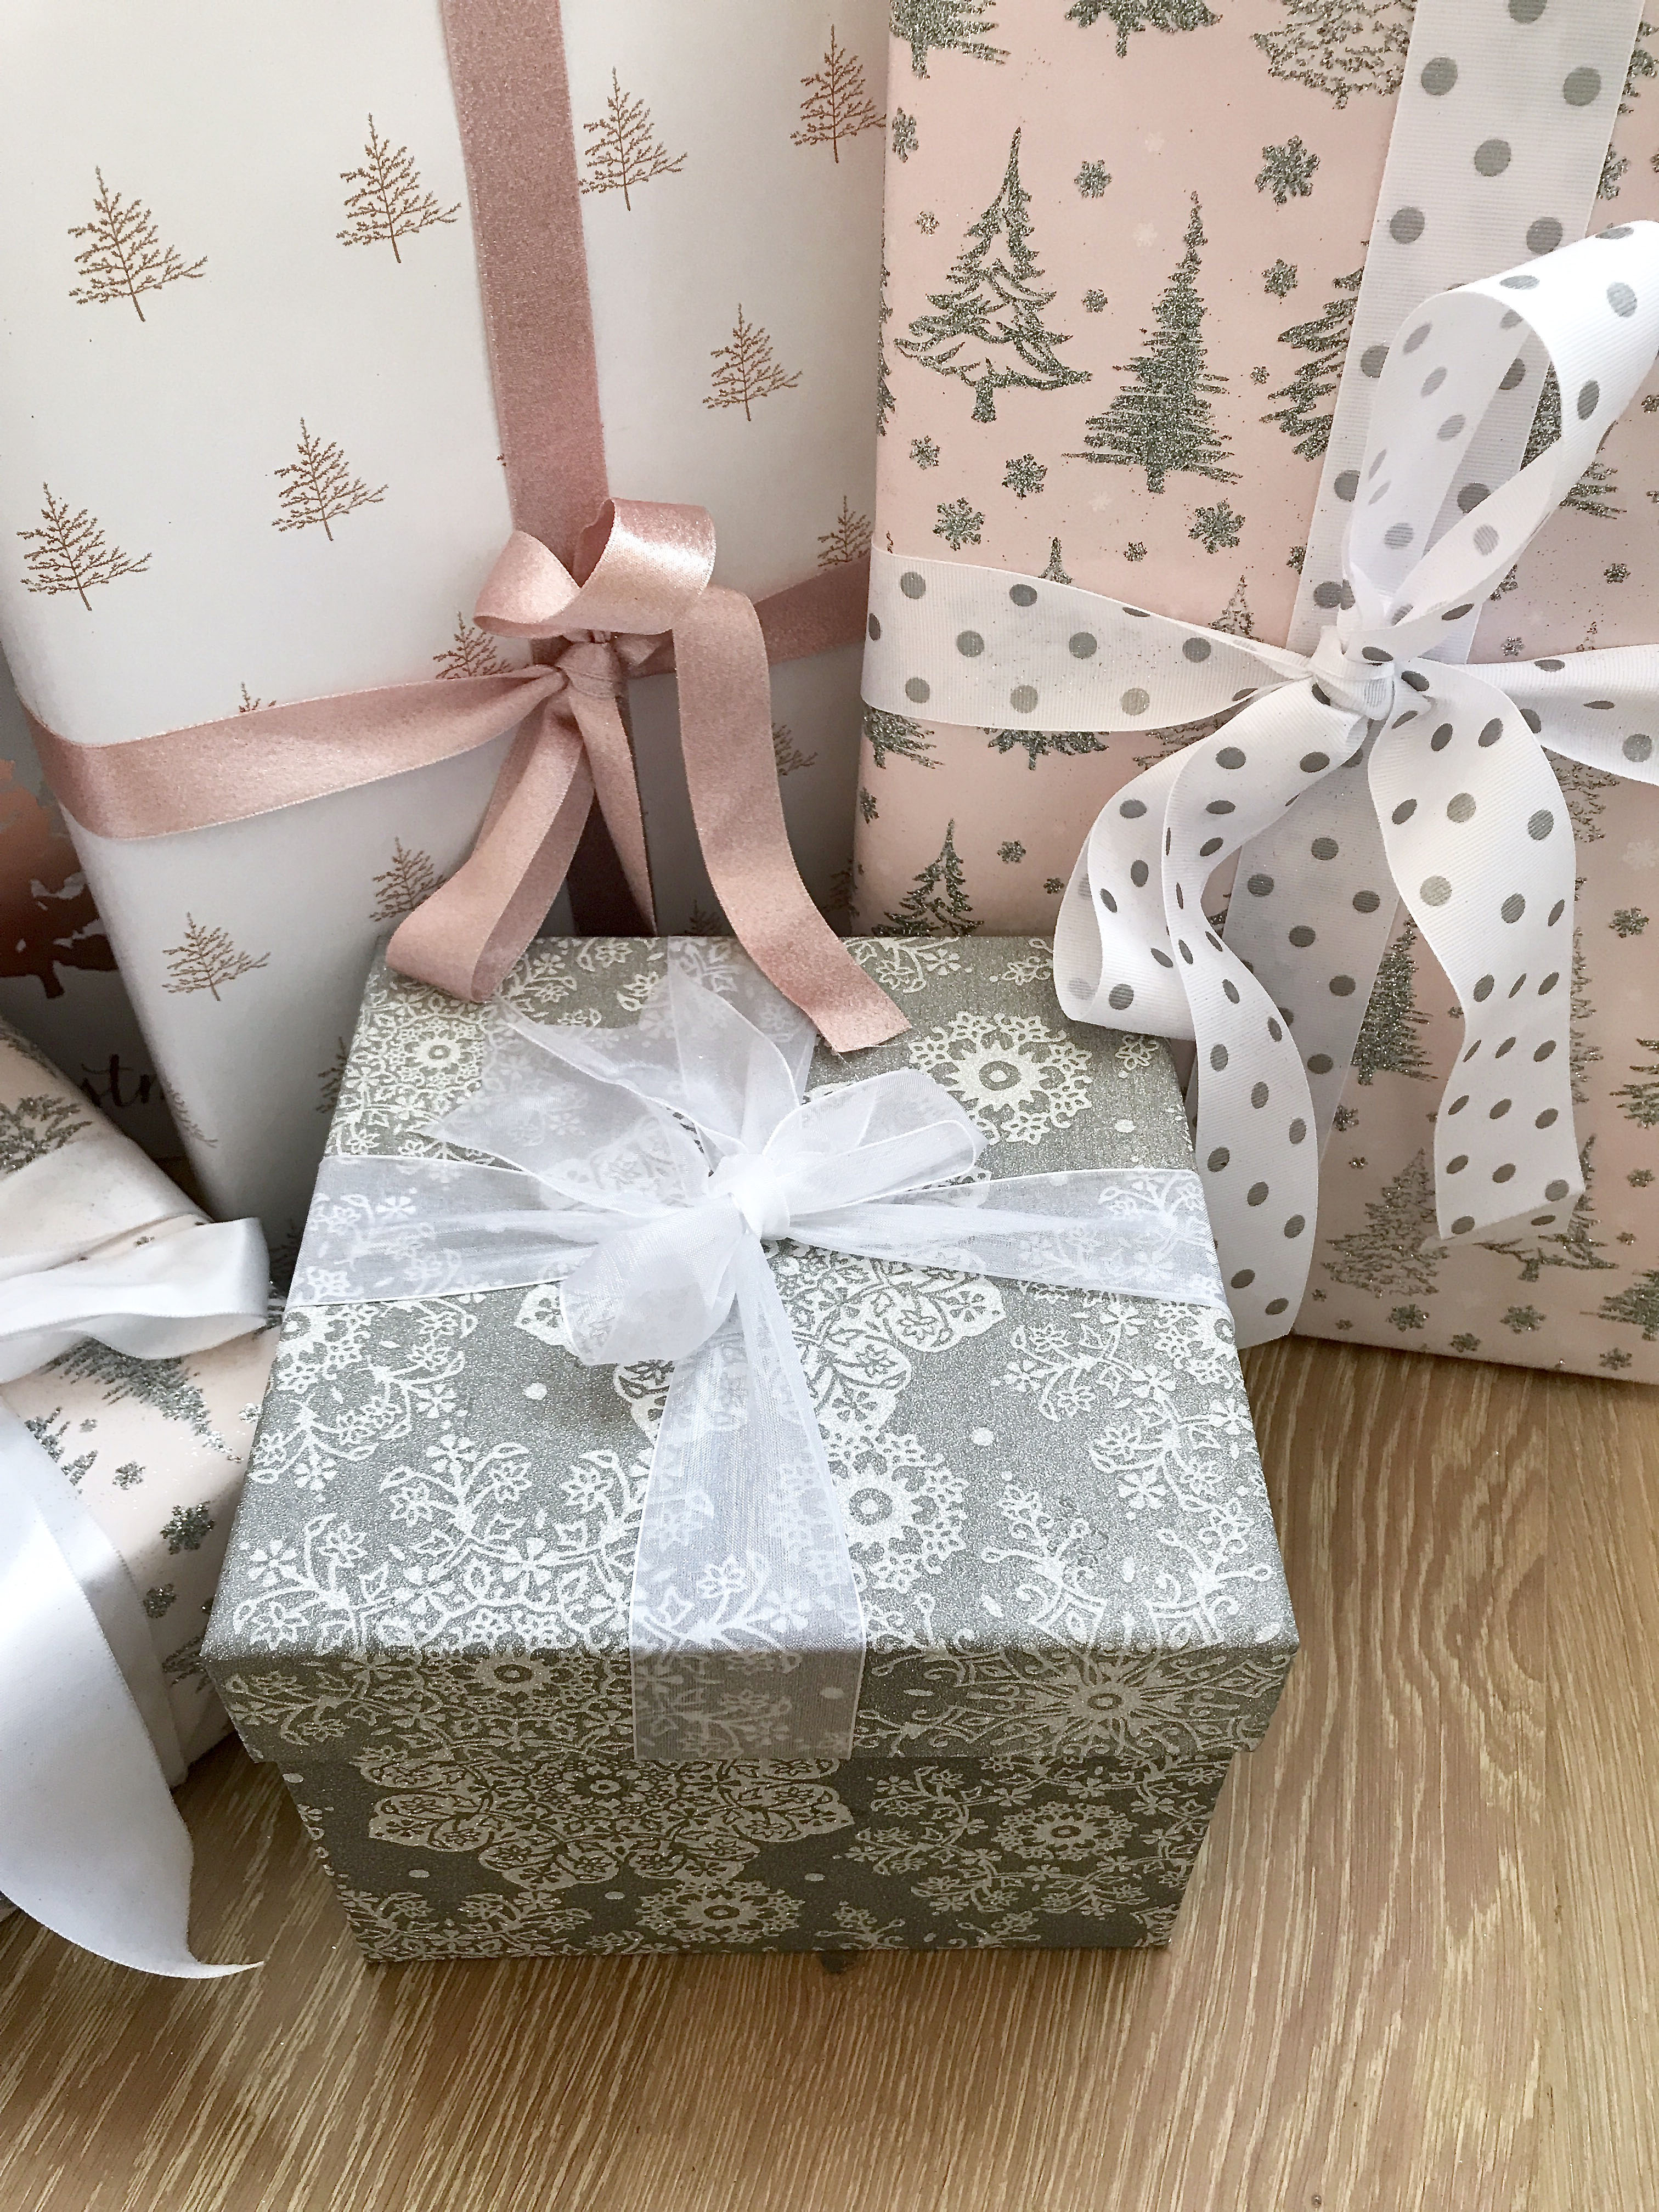 Tips On Gift Wrapping Holiday Presents - Kristy Wicks